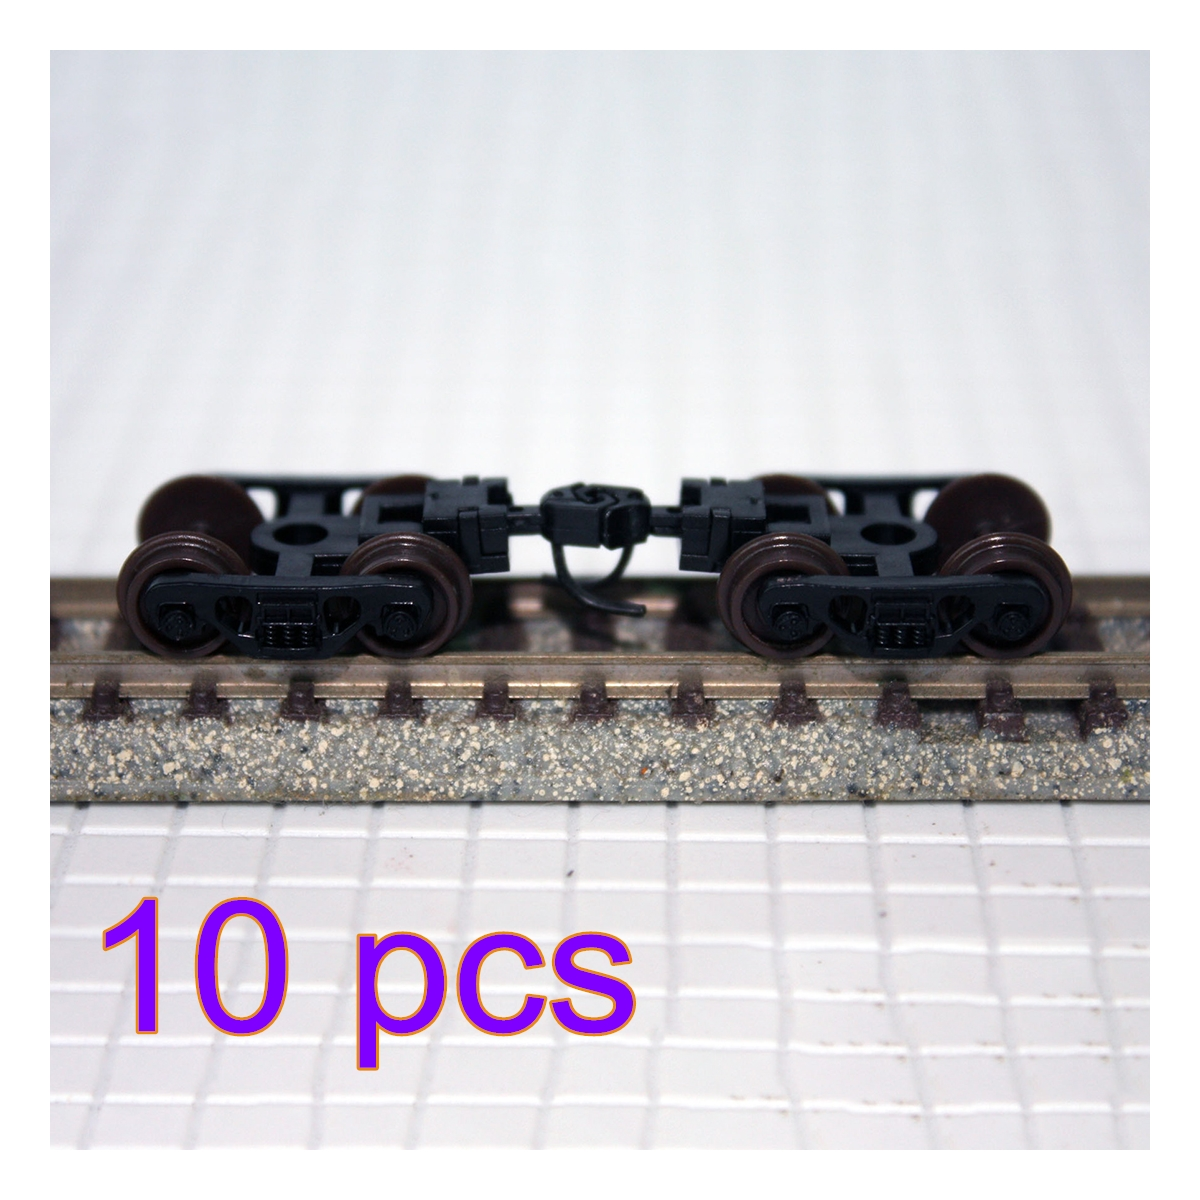 1pcs/2pcs/5pcs/10pcs 1:160 Train Bogie Model Train Wheel Bogie Set For N-Scale Train Model Ho Scale Model Train Accessories